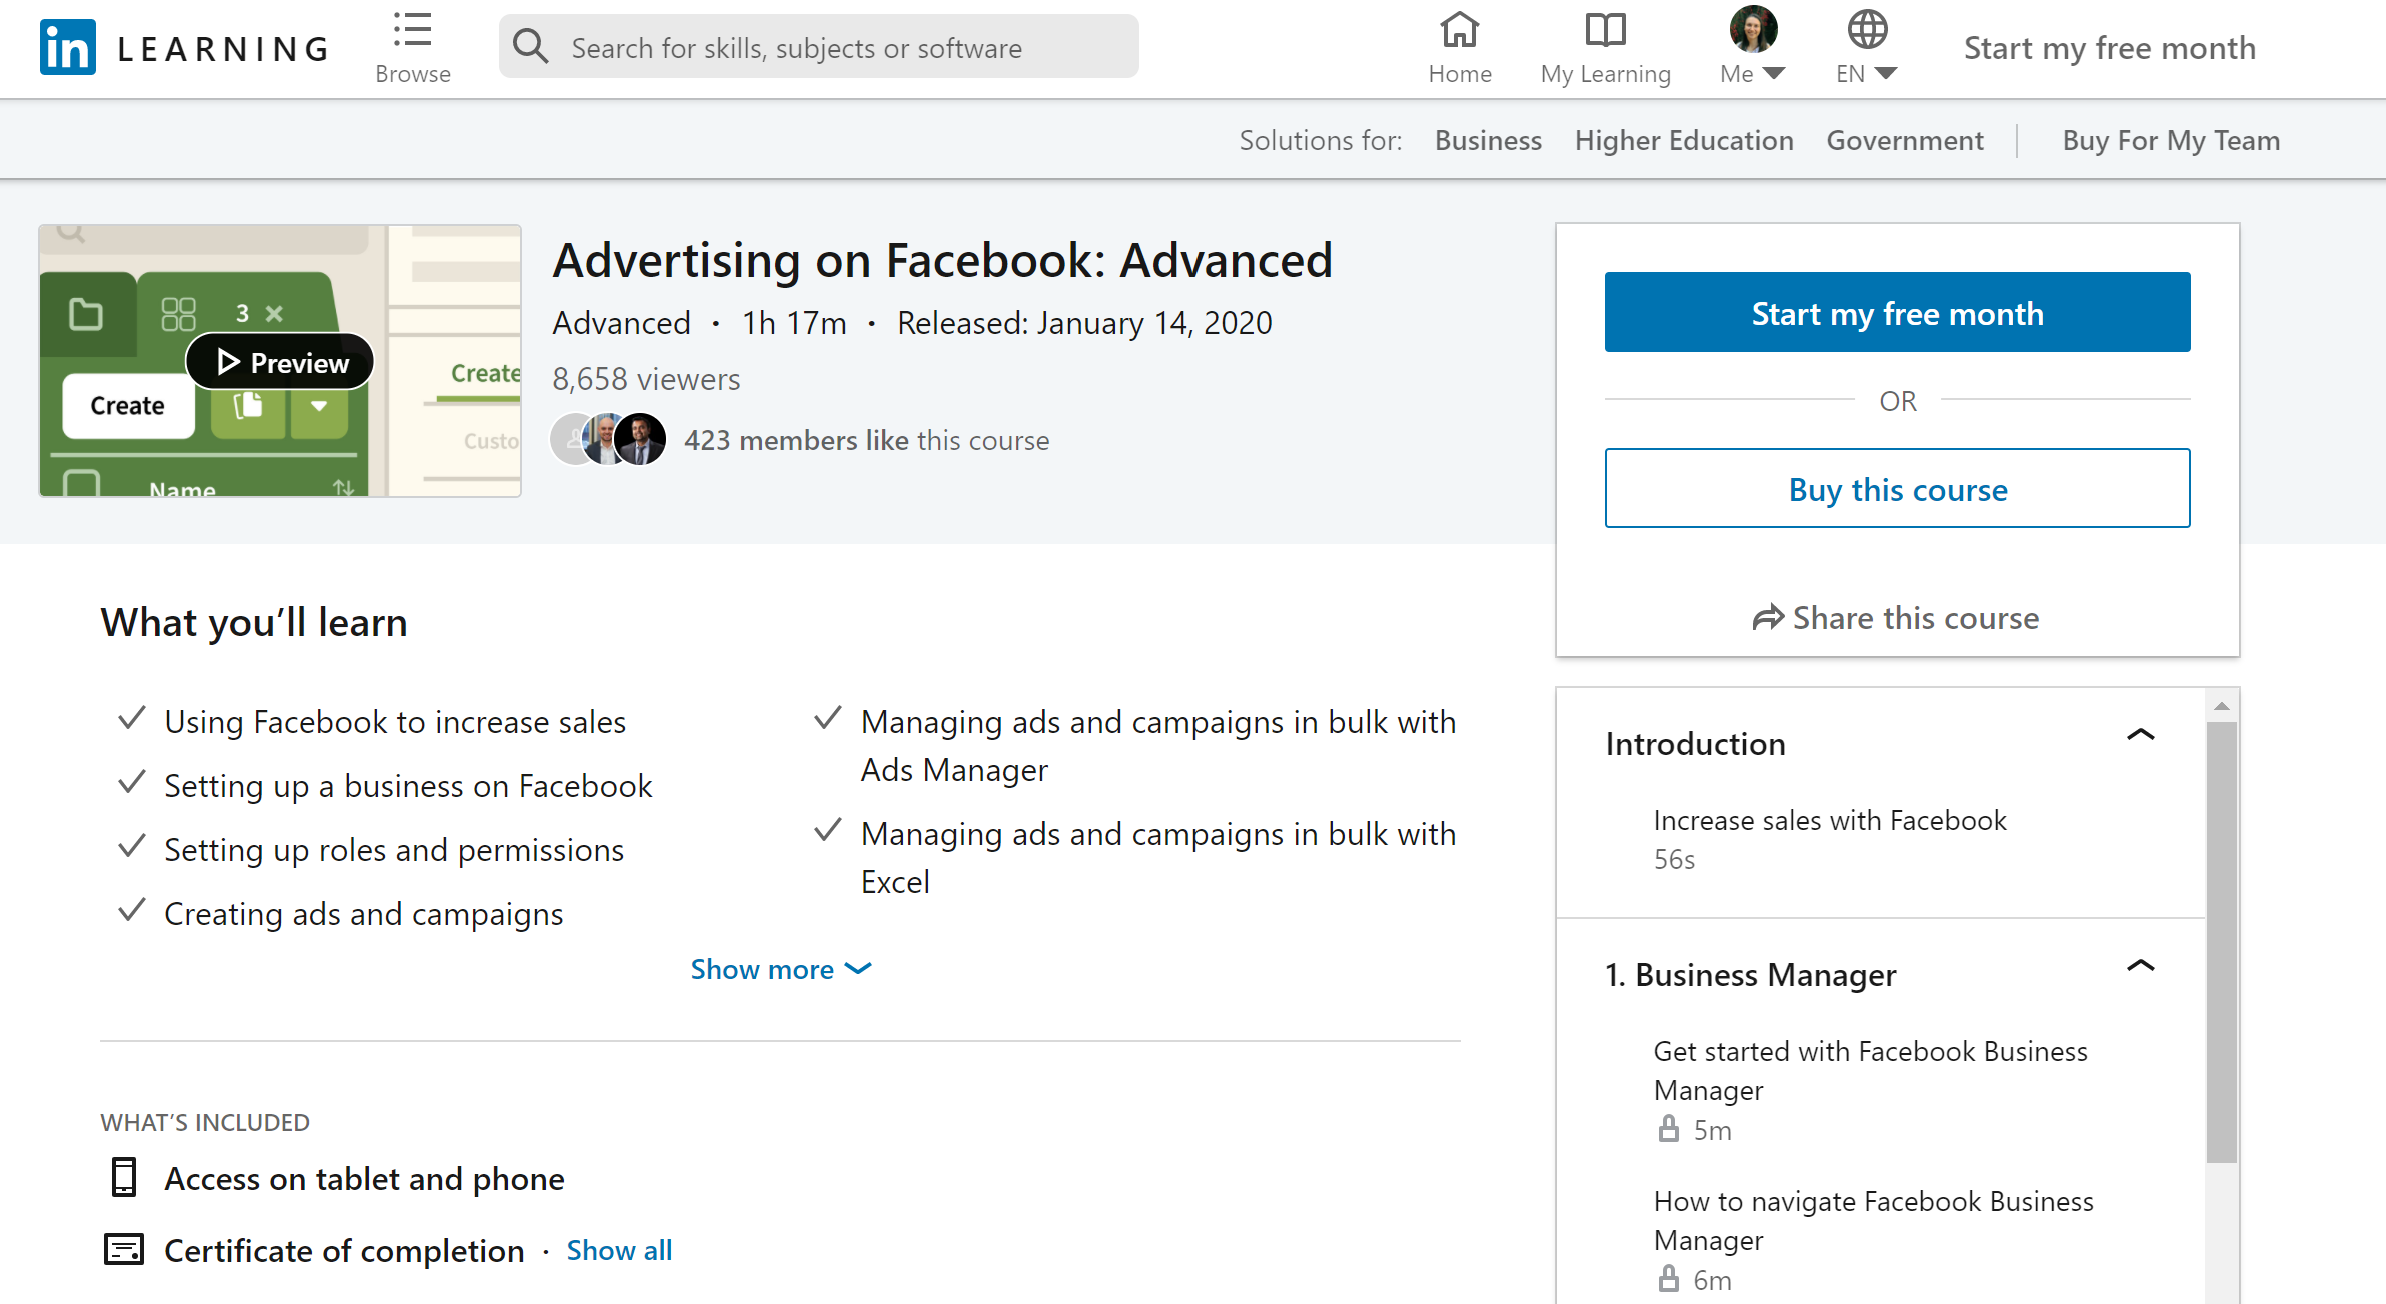 LinkedIn Learning Advertising on Facebook: Advanced